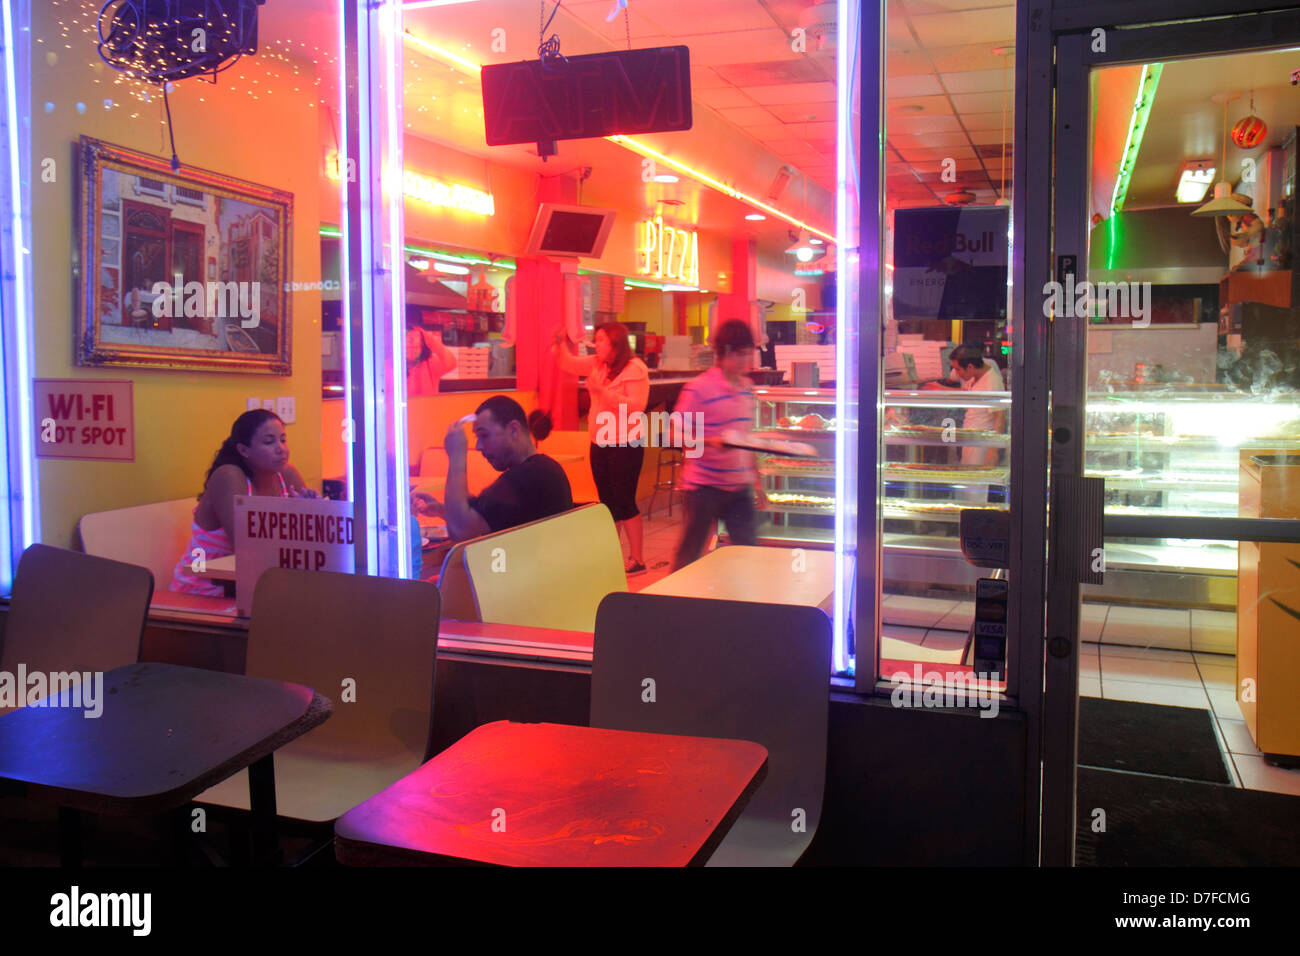 Miami Beach Florida Alton Road pizza parlor restaurant wi-fi hot spot night nightlife interior inside customers - Stock Image